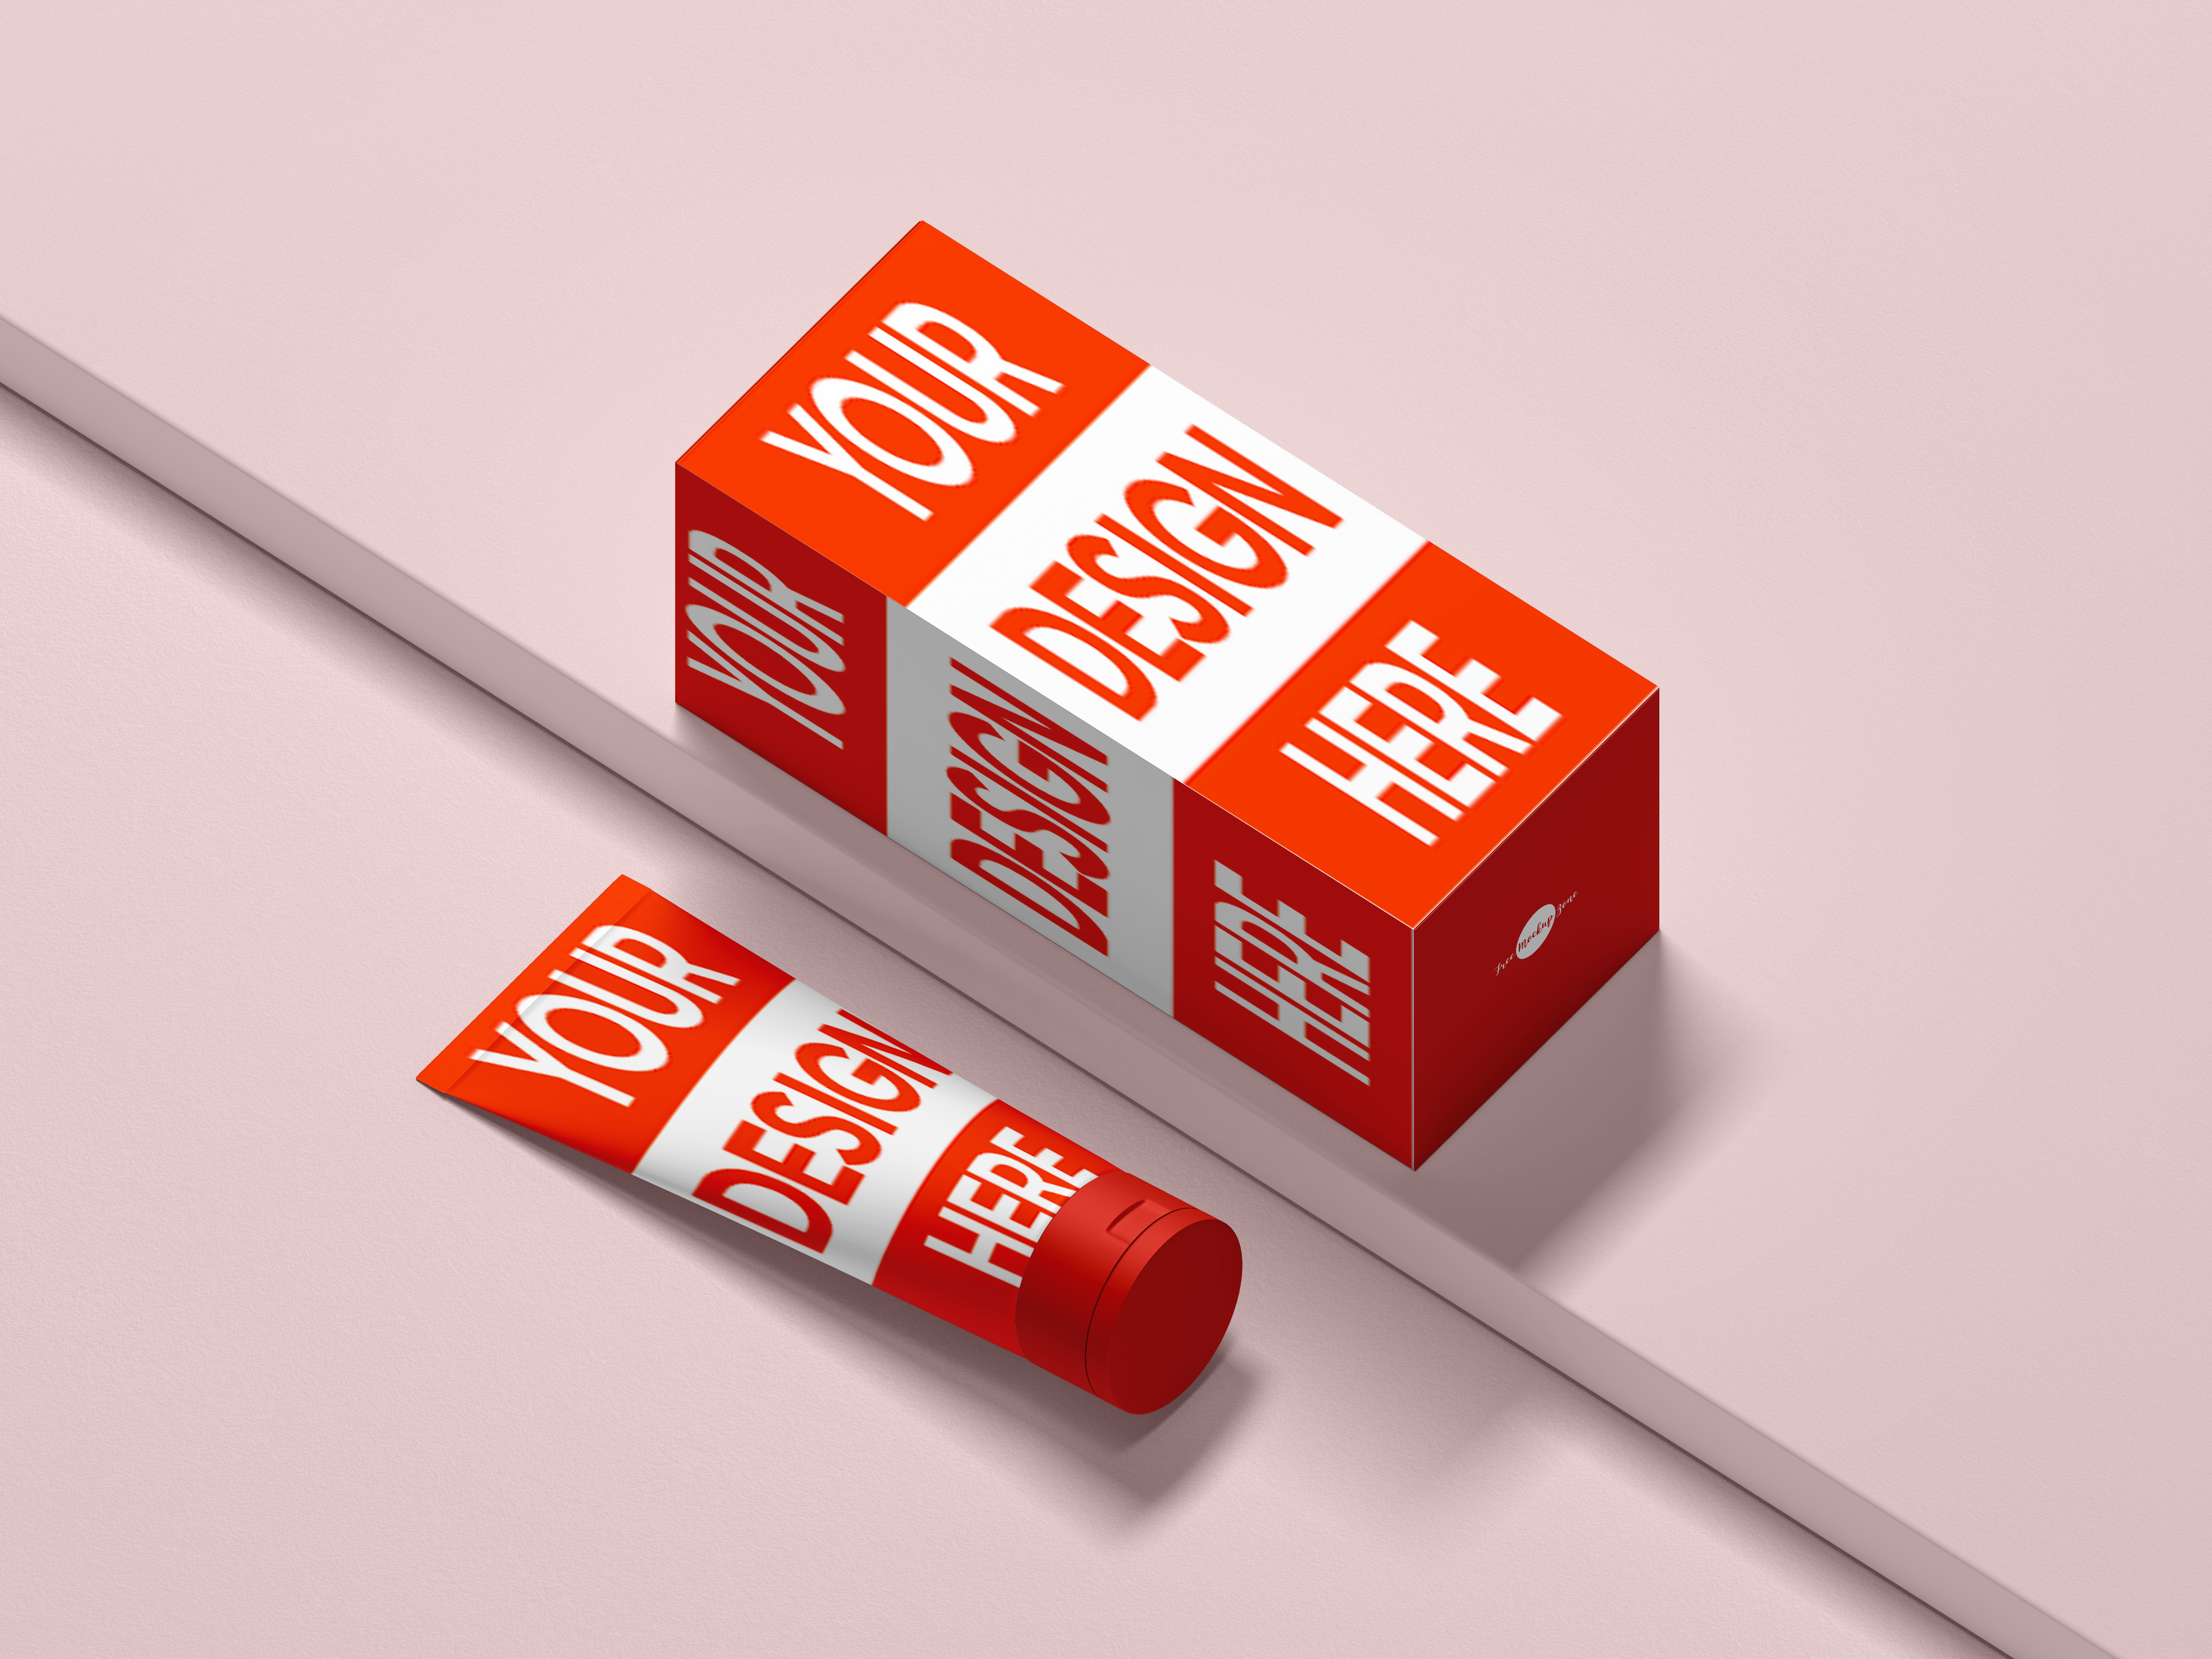 Create product packaging design and label mockup